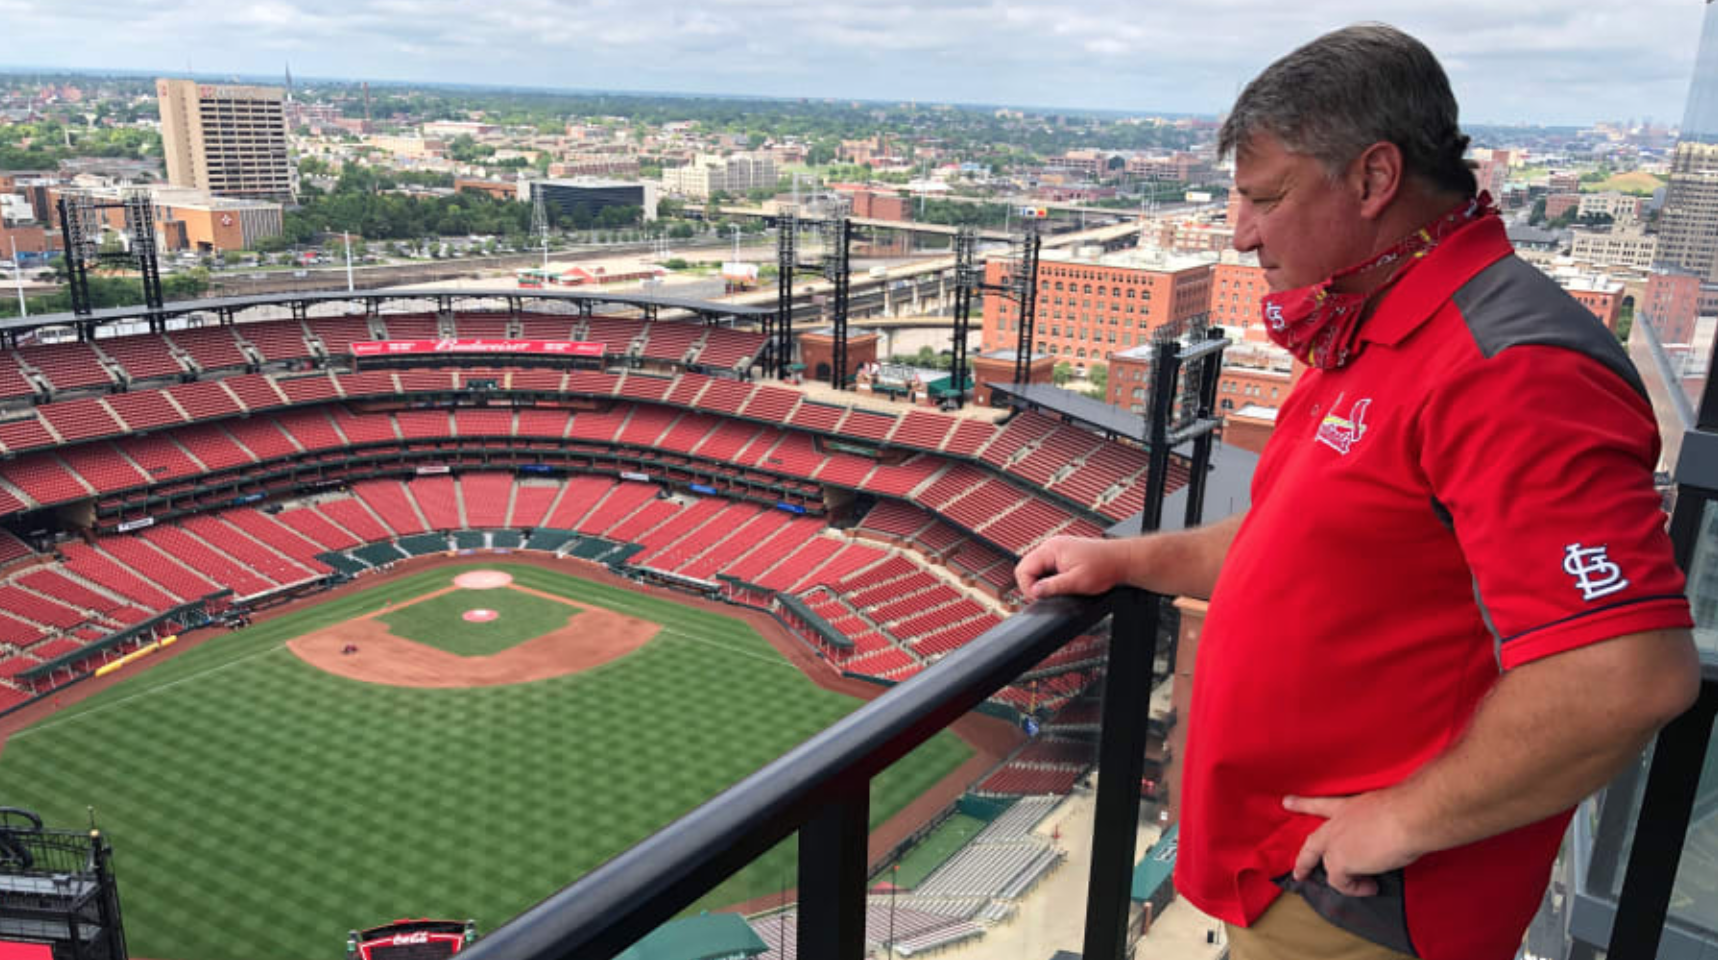 With no fans at baseball games, the best seats in the house are at these luxury rentals near stadiums